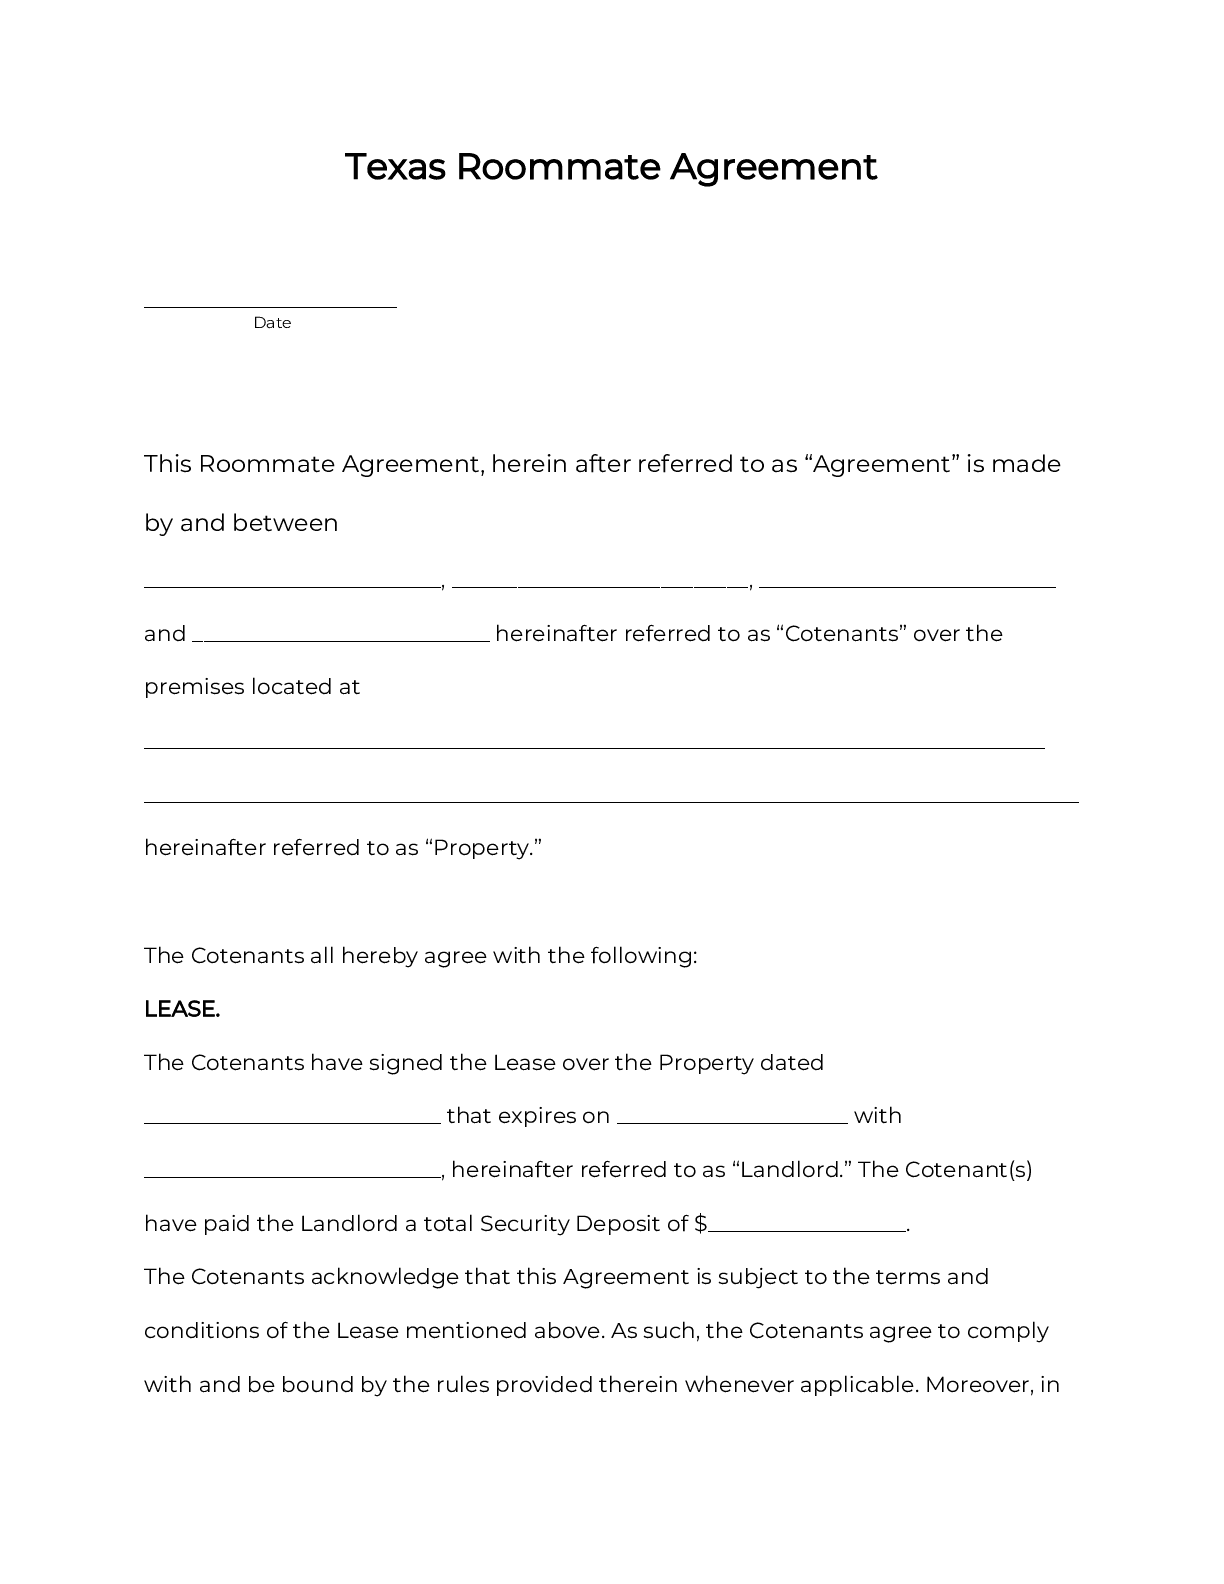 Knowing the importance of having one as well as what should be written in the agreement are helpful in terms of creating the perfect room rental agreement template. Official Texas Room Rental Agreement Roommate Form 2021 Pdf